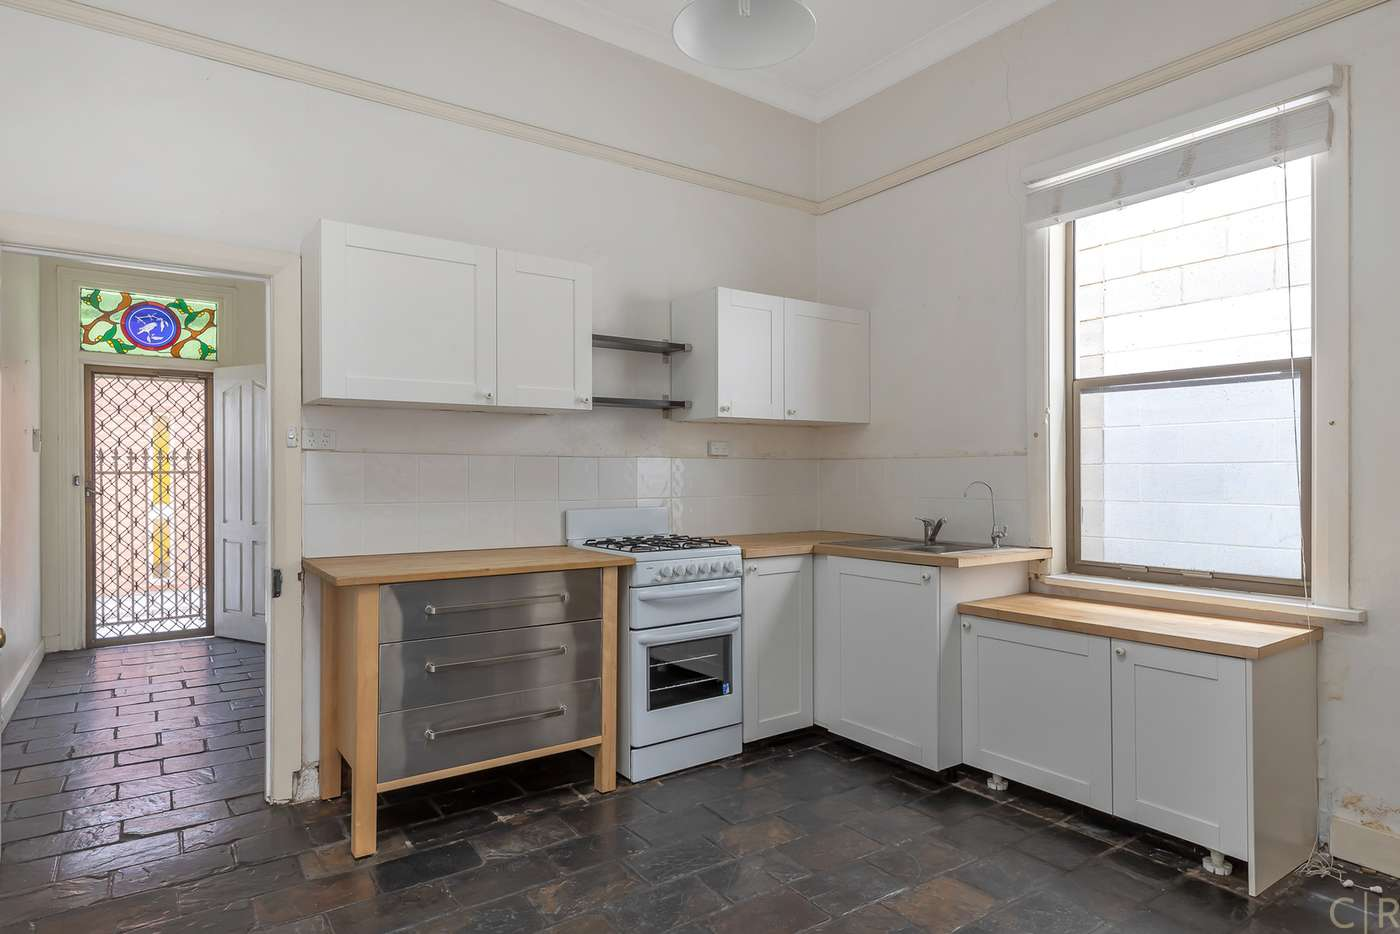 Main view of Homely house listing, 22 Hobsons Place, Adelaide SA 5000